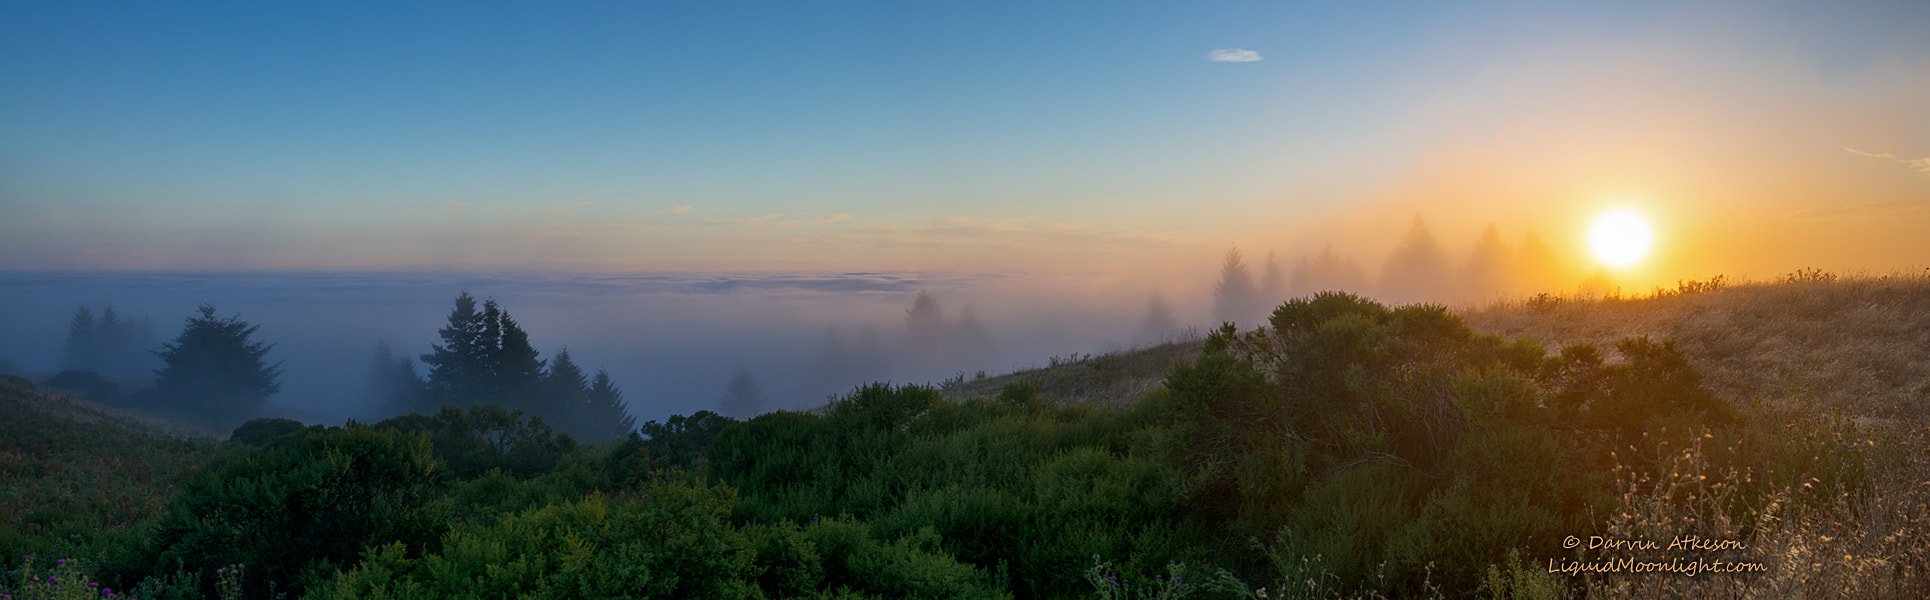 Photograph Sun Glow - Mt. Tamalpais Panorama by Darvin Atkeson on 500px